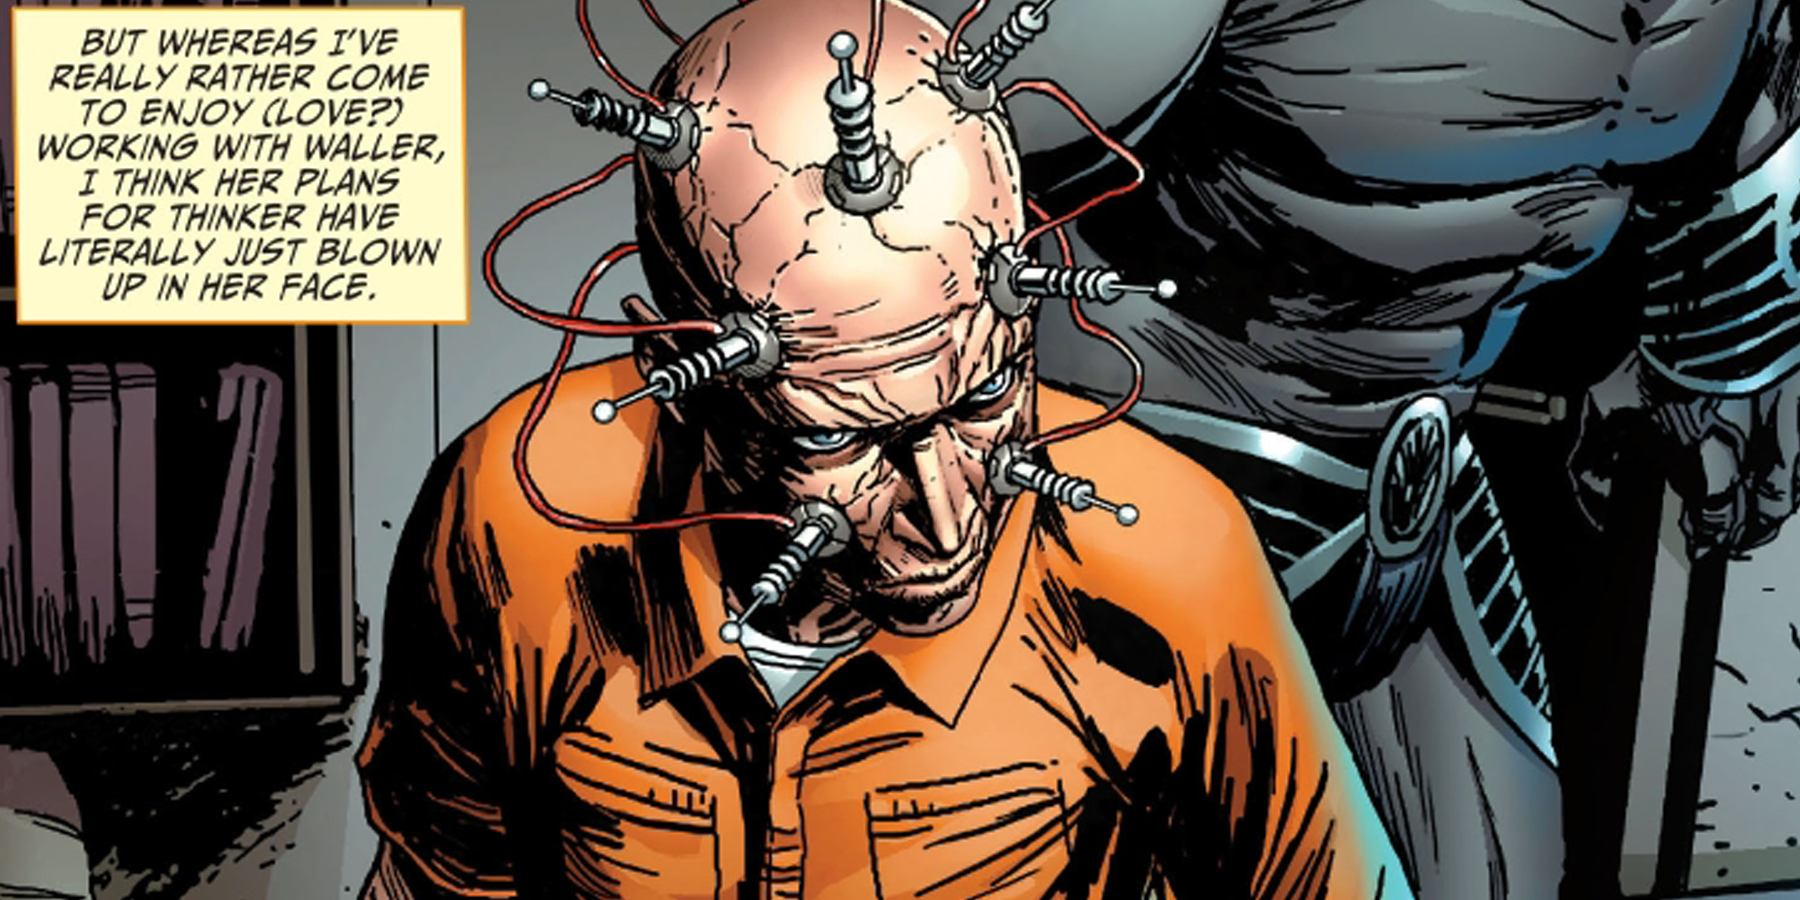 A comic book scene of a man in an orange prison suit with wires attached to his brain